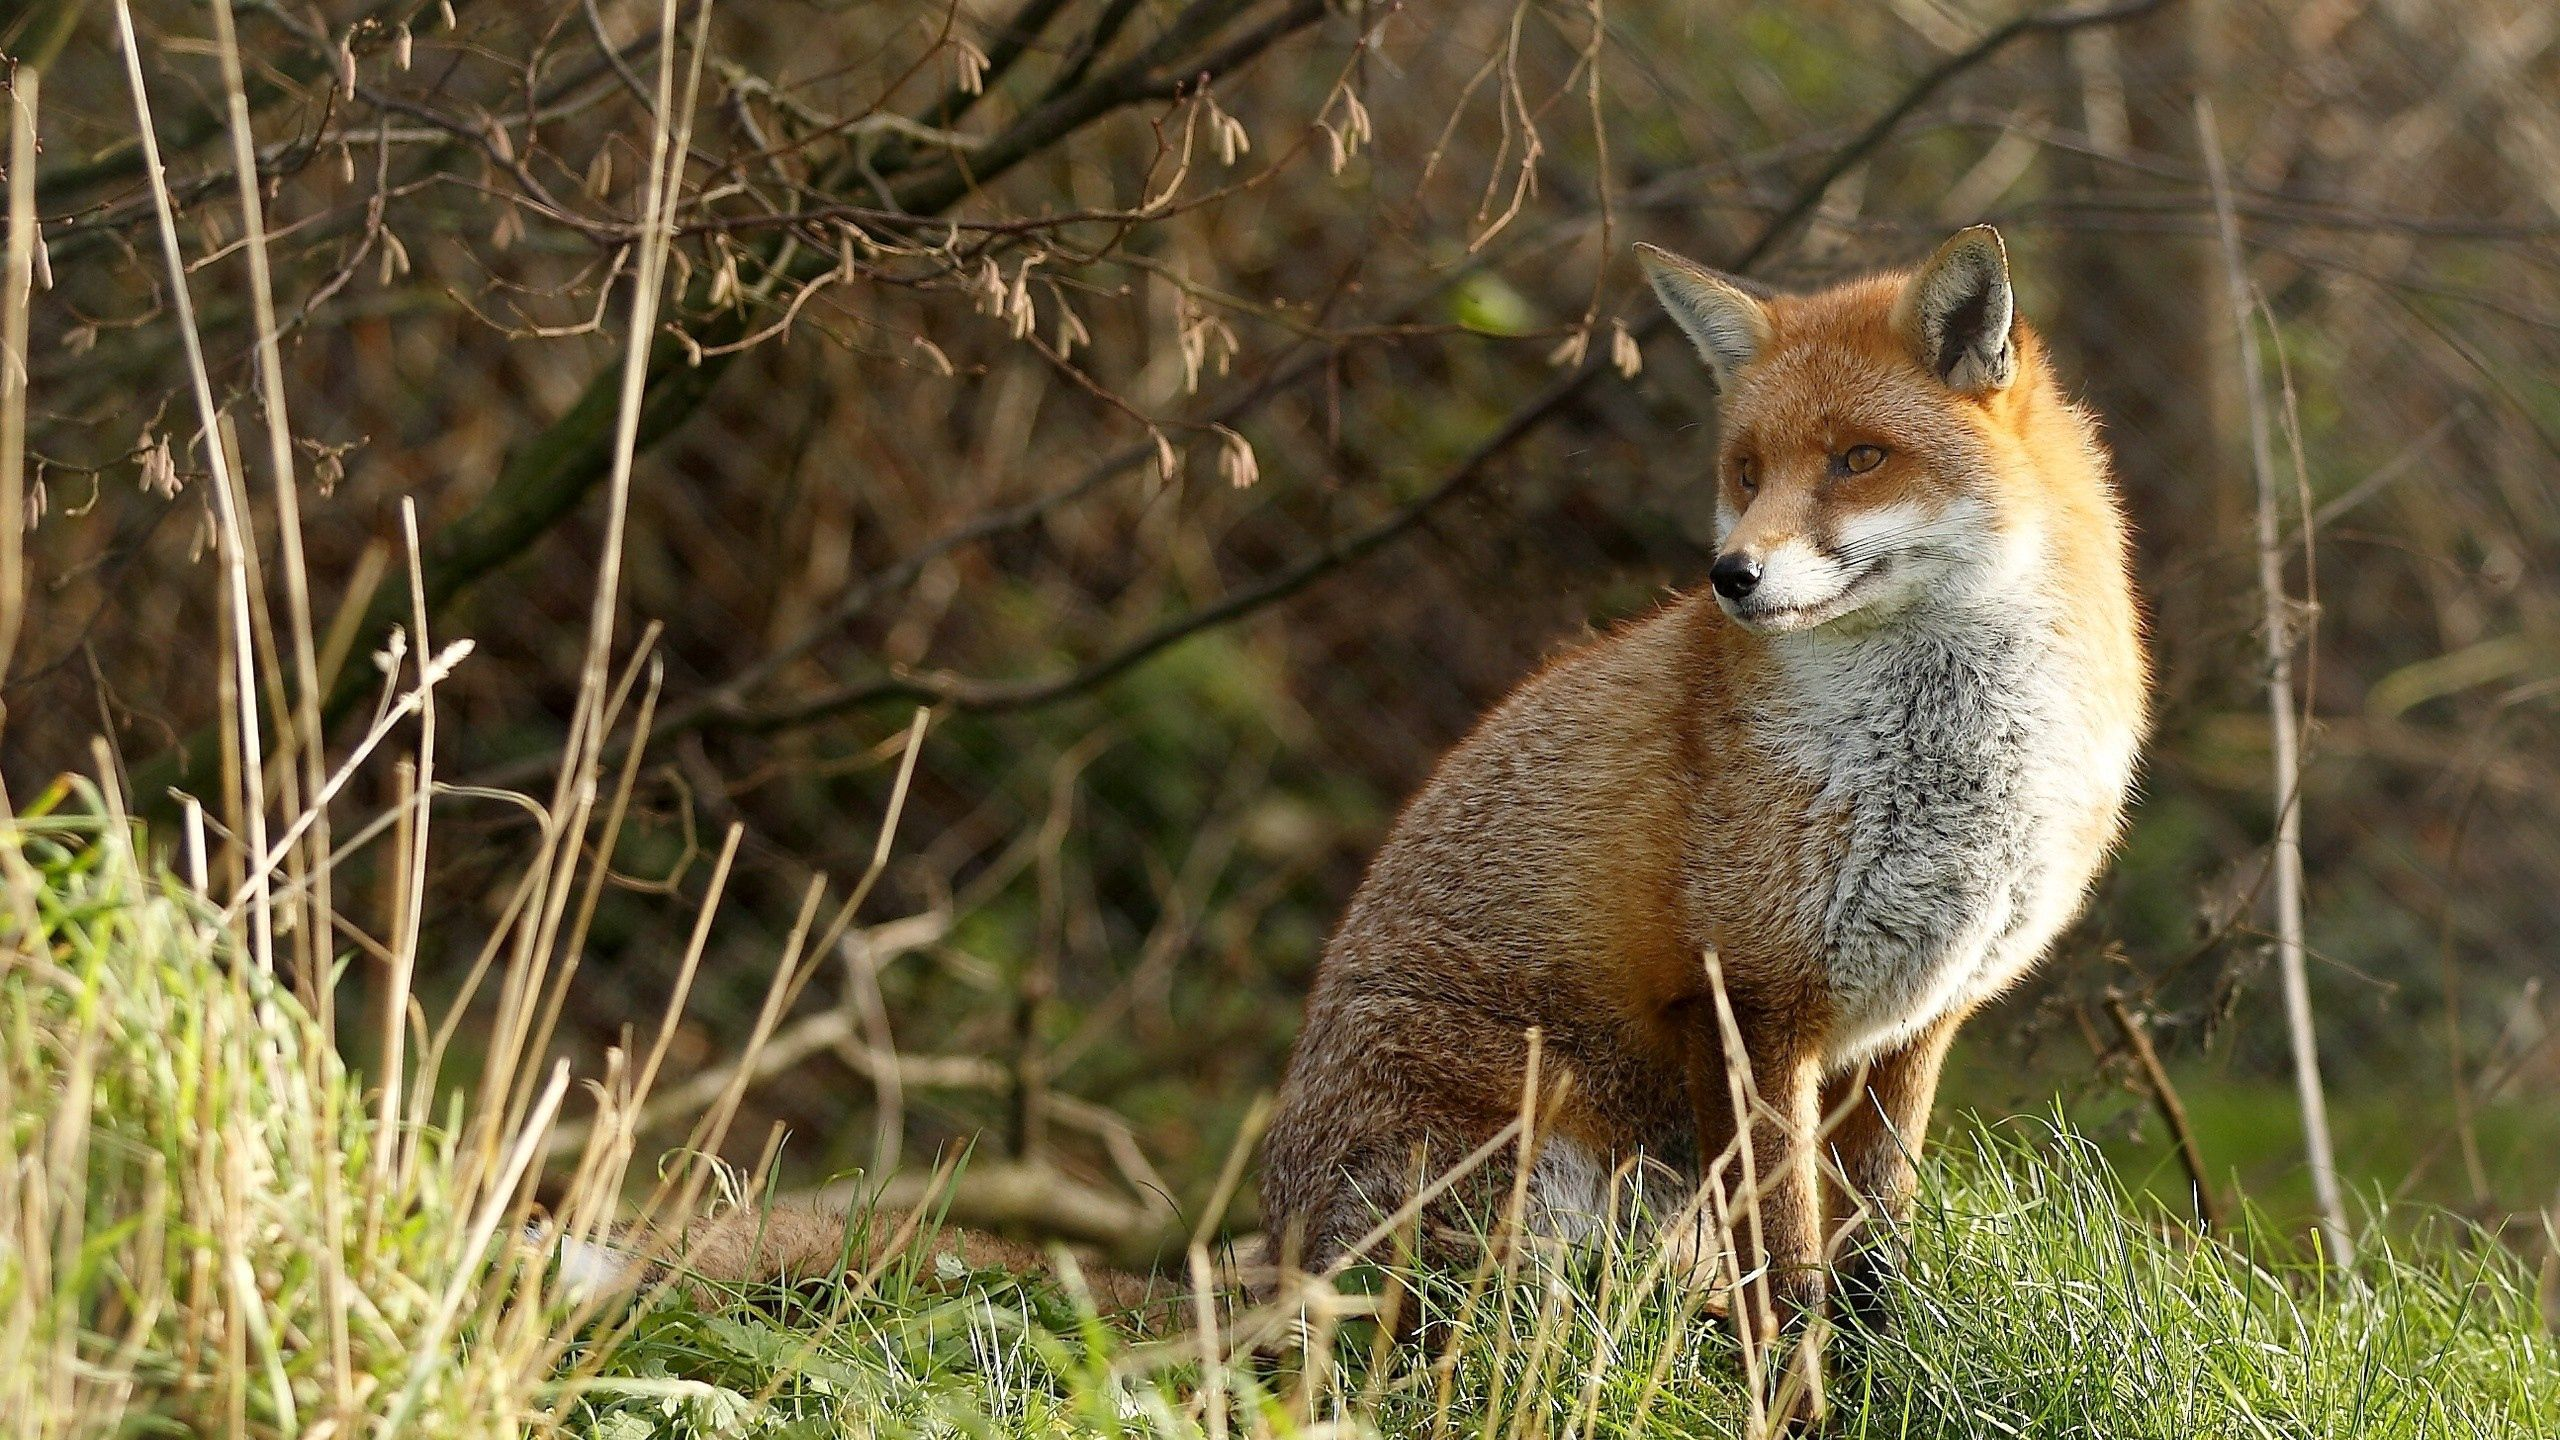 127609 download wallpaper Animals, Fox, Grass, Sit, Predator screensavers and pictures for free